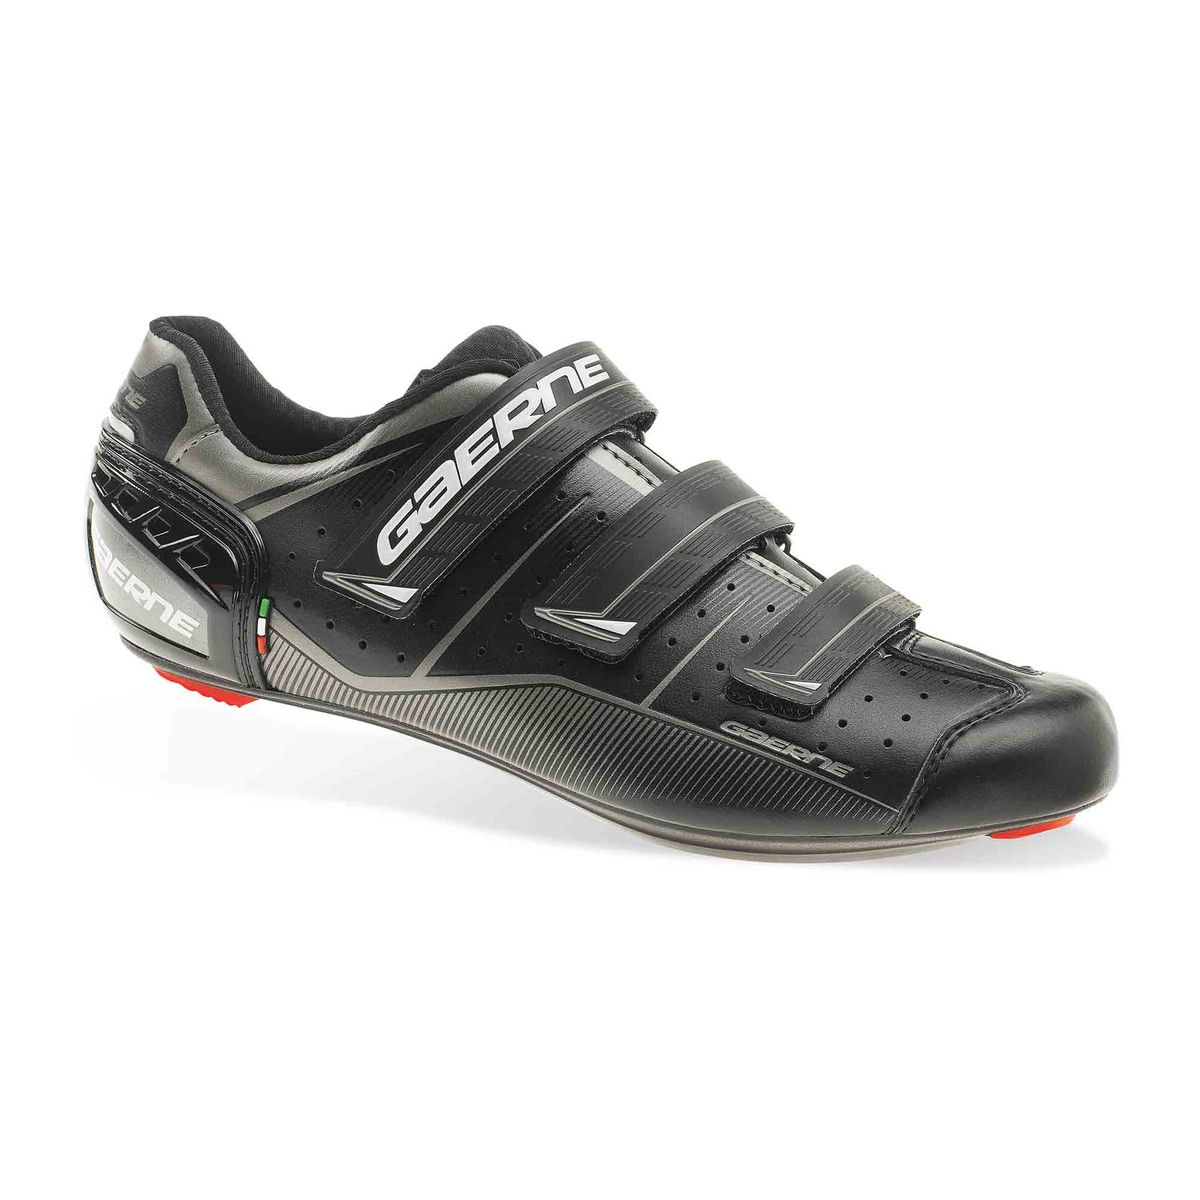 G.RECORD wide road shoes